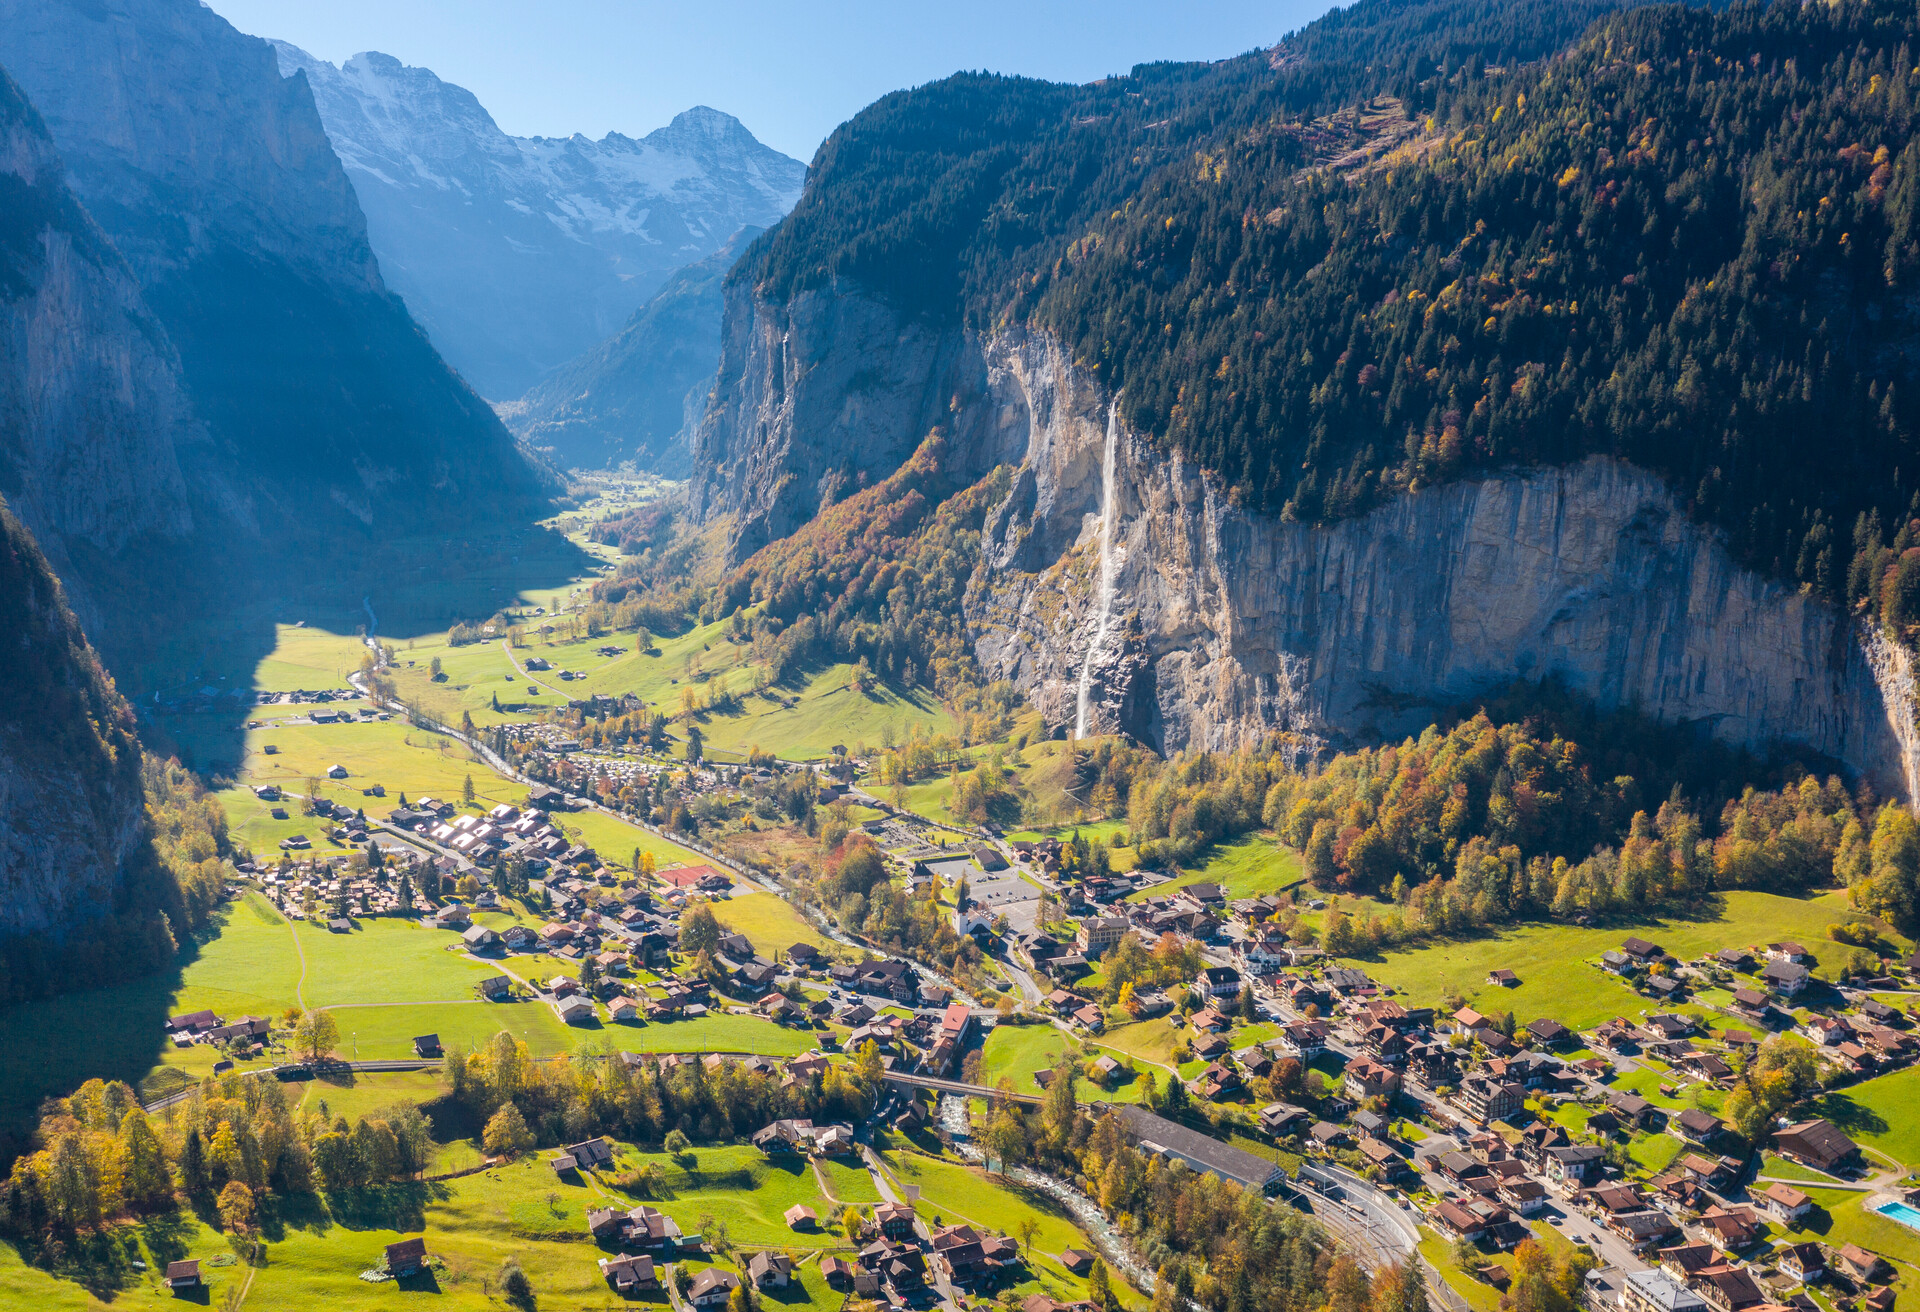 An impressive view over Swiss landscape.